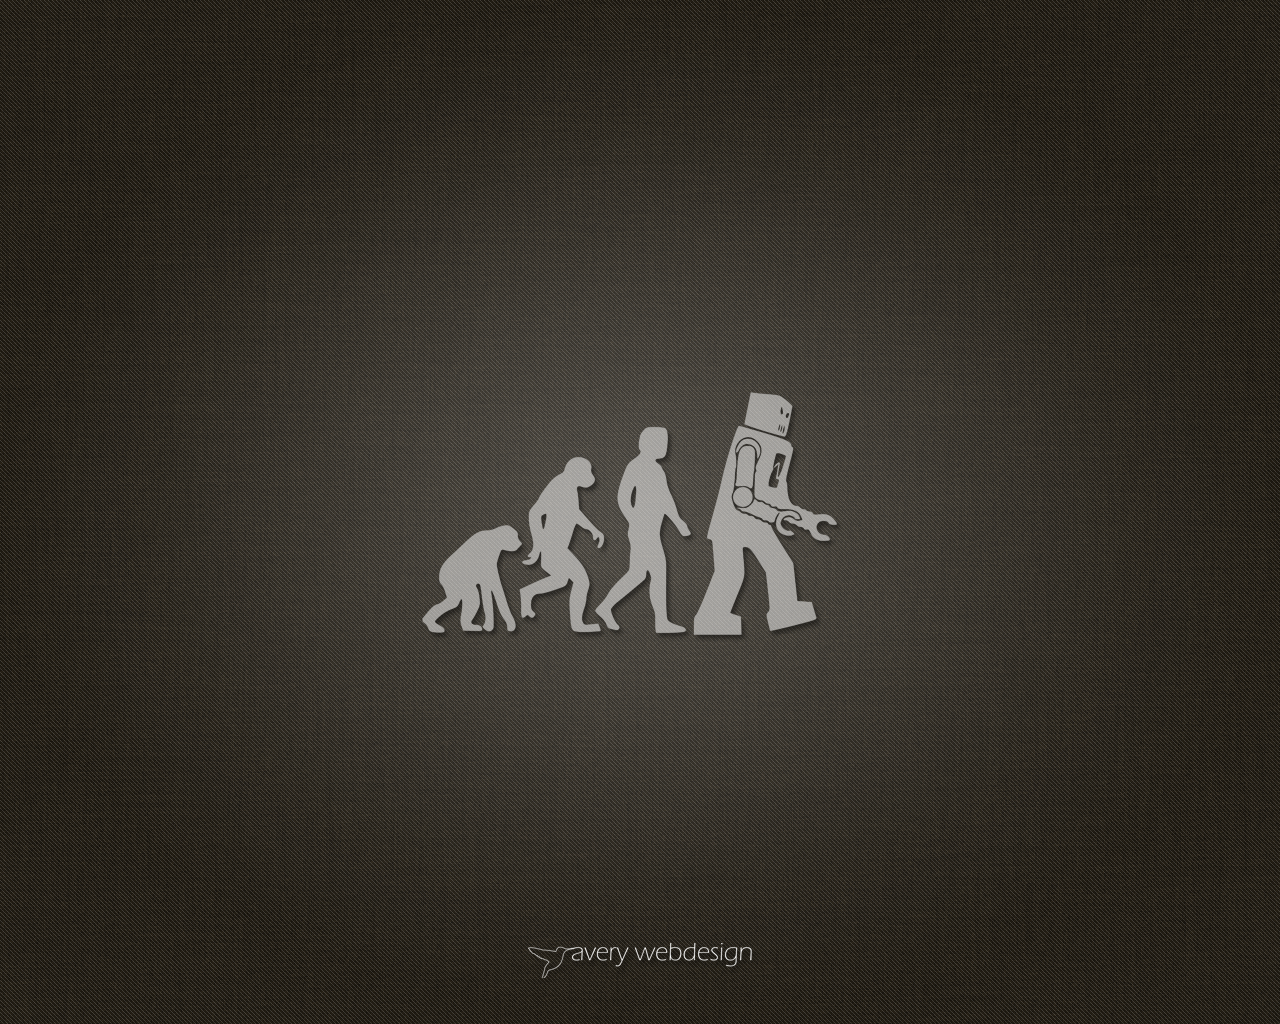 Robot Evolution Denim Wallpaper in Brown by averywebdesign